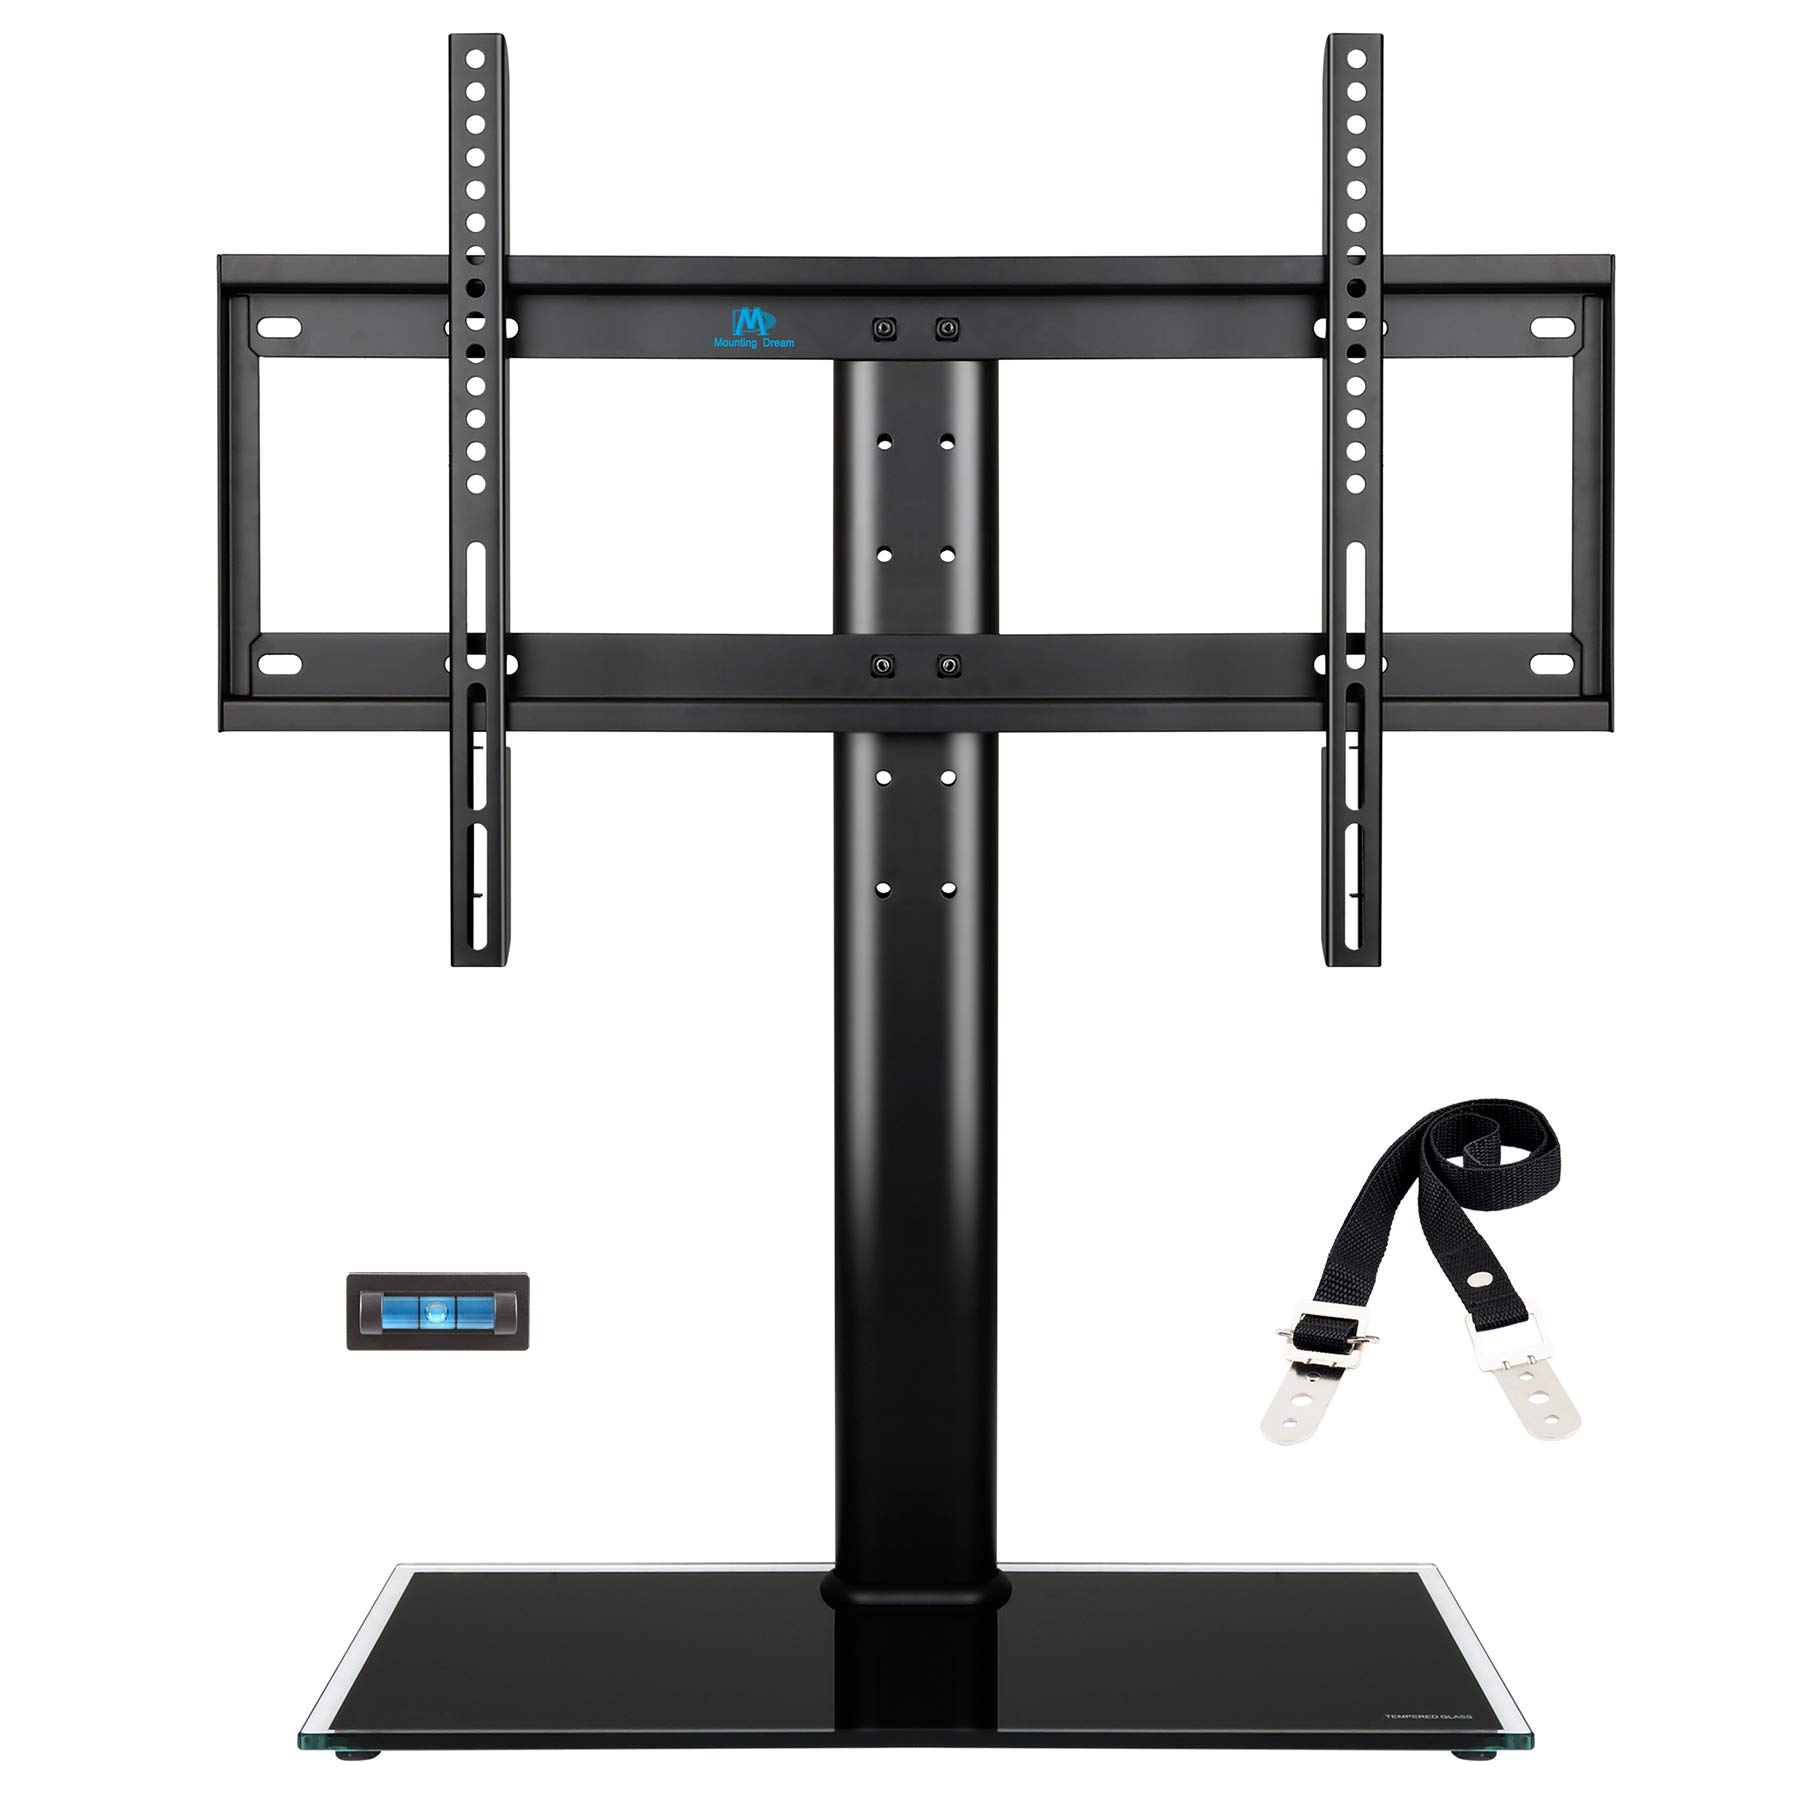 Mounting Dream MD5109 table top TV stand with anti-tip strap, 3 set height adjustment and tempered glass base fit for most of 42-60 Inches Plasma, LED, and LCD TVs with Max VESA 600x400mm (24'' x16'')